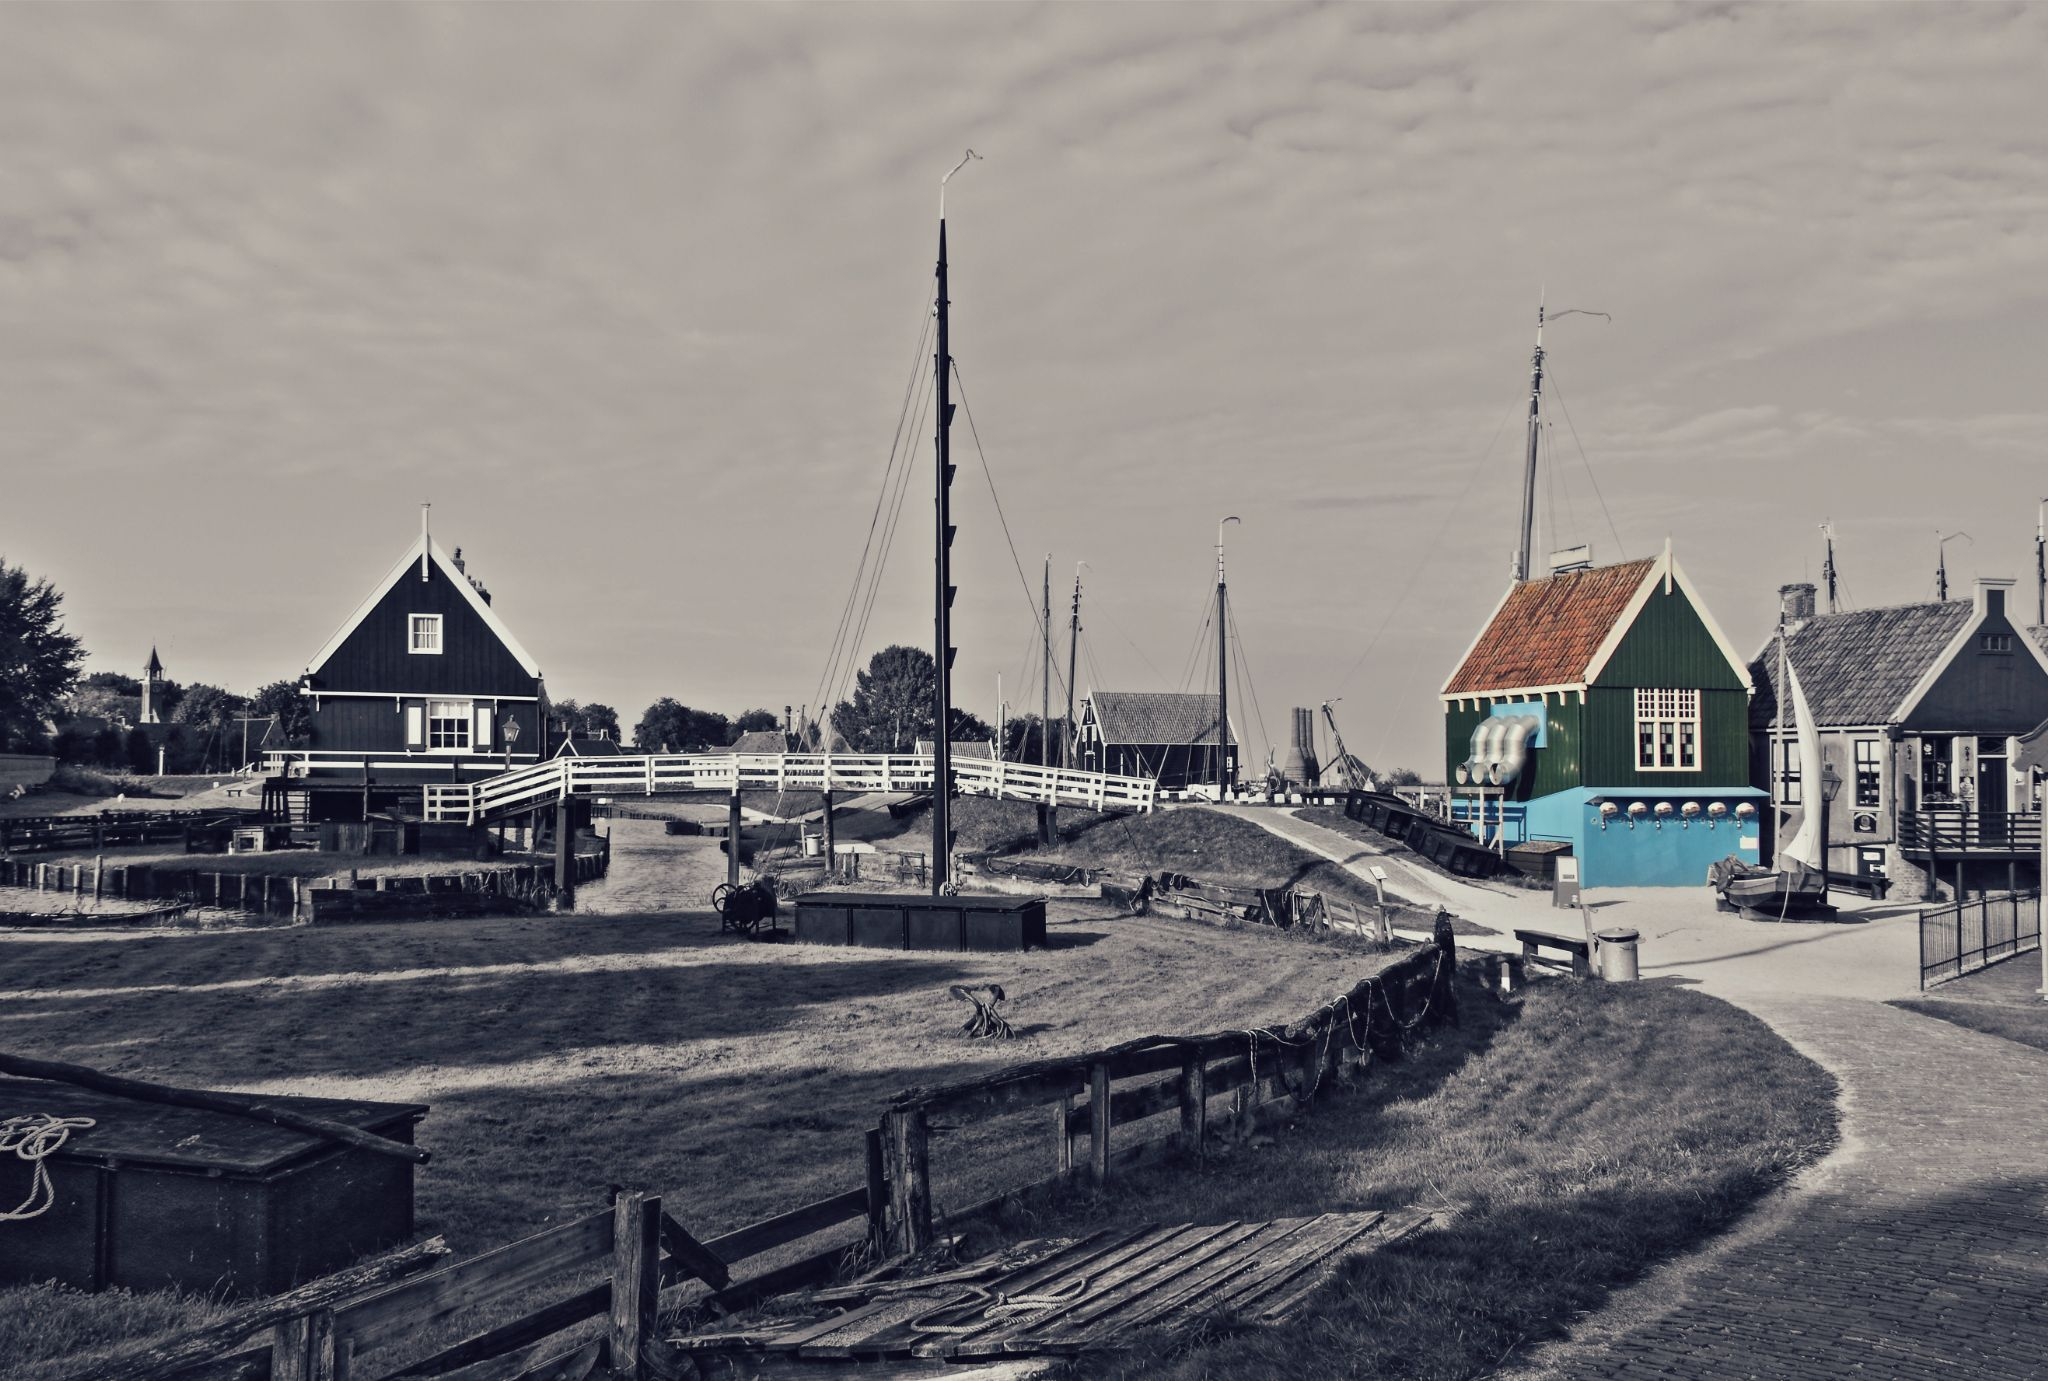 MUSEUM ENKHUIZEN by EnRICoPictures